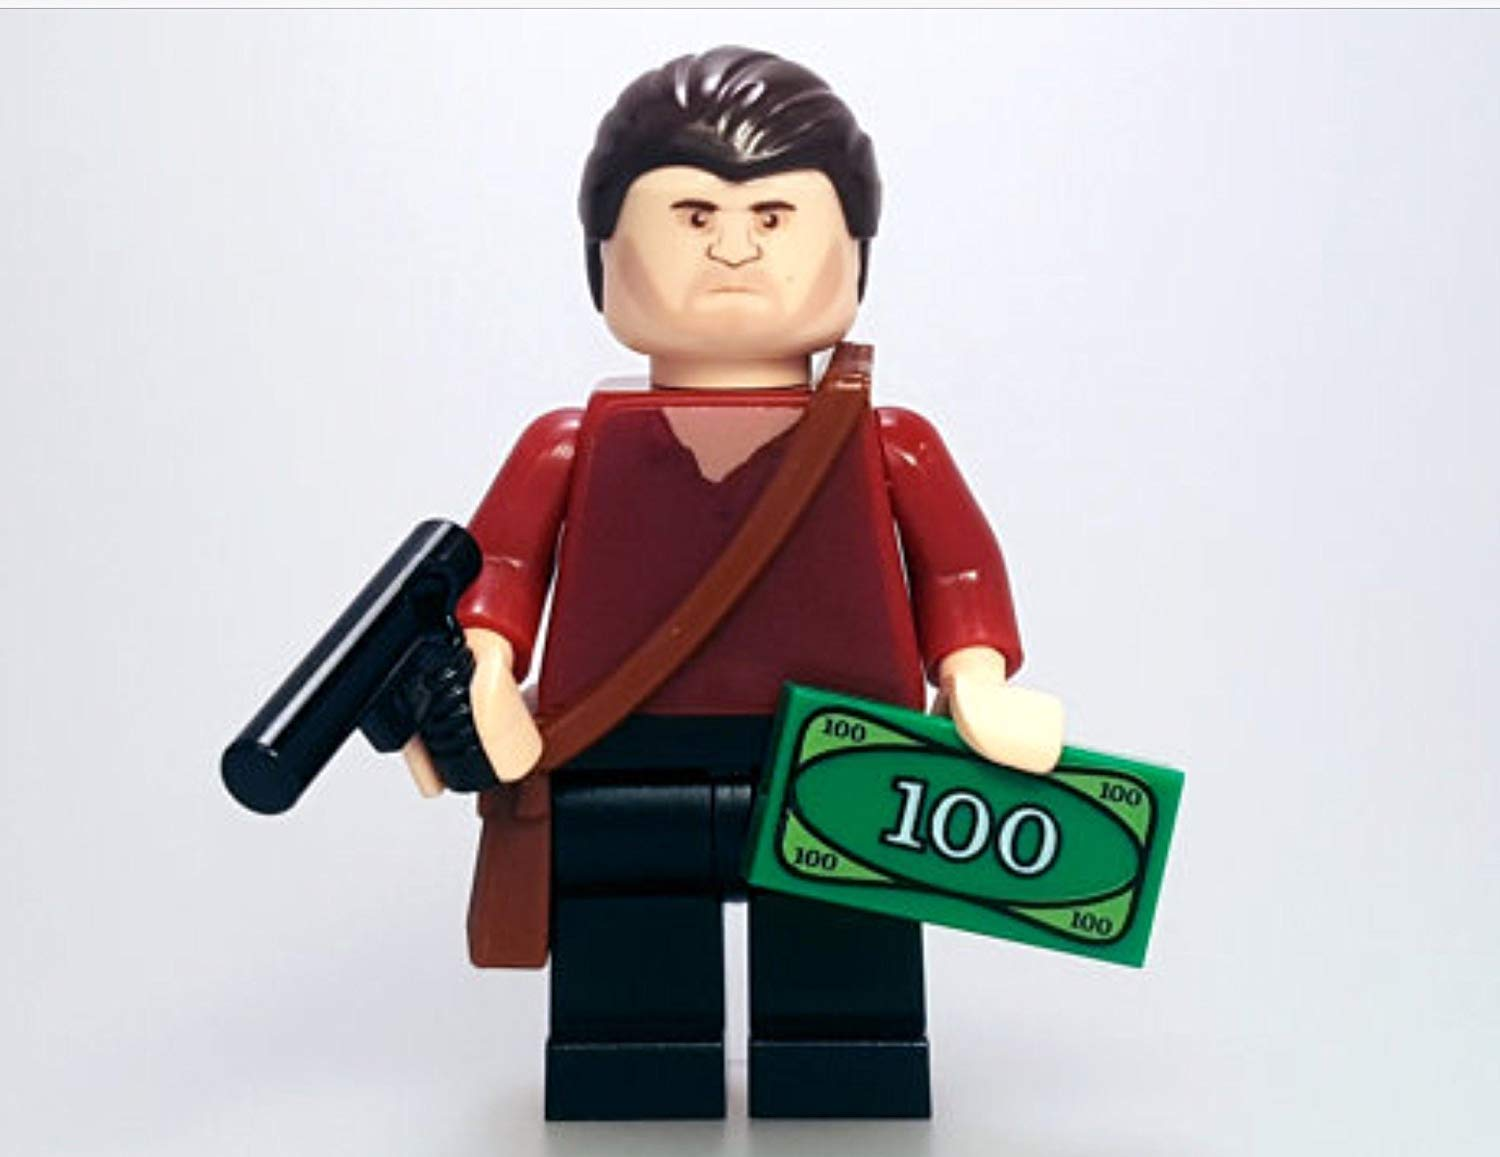 Lego gta 5 movie